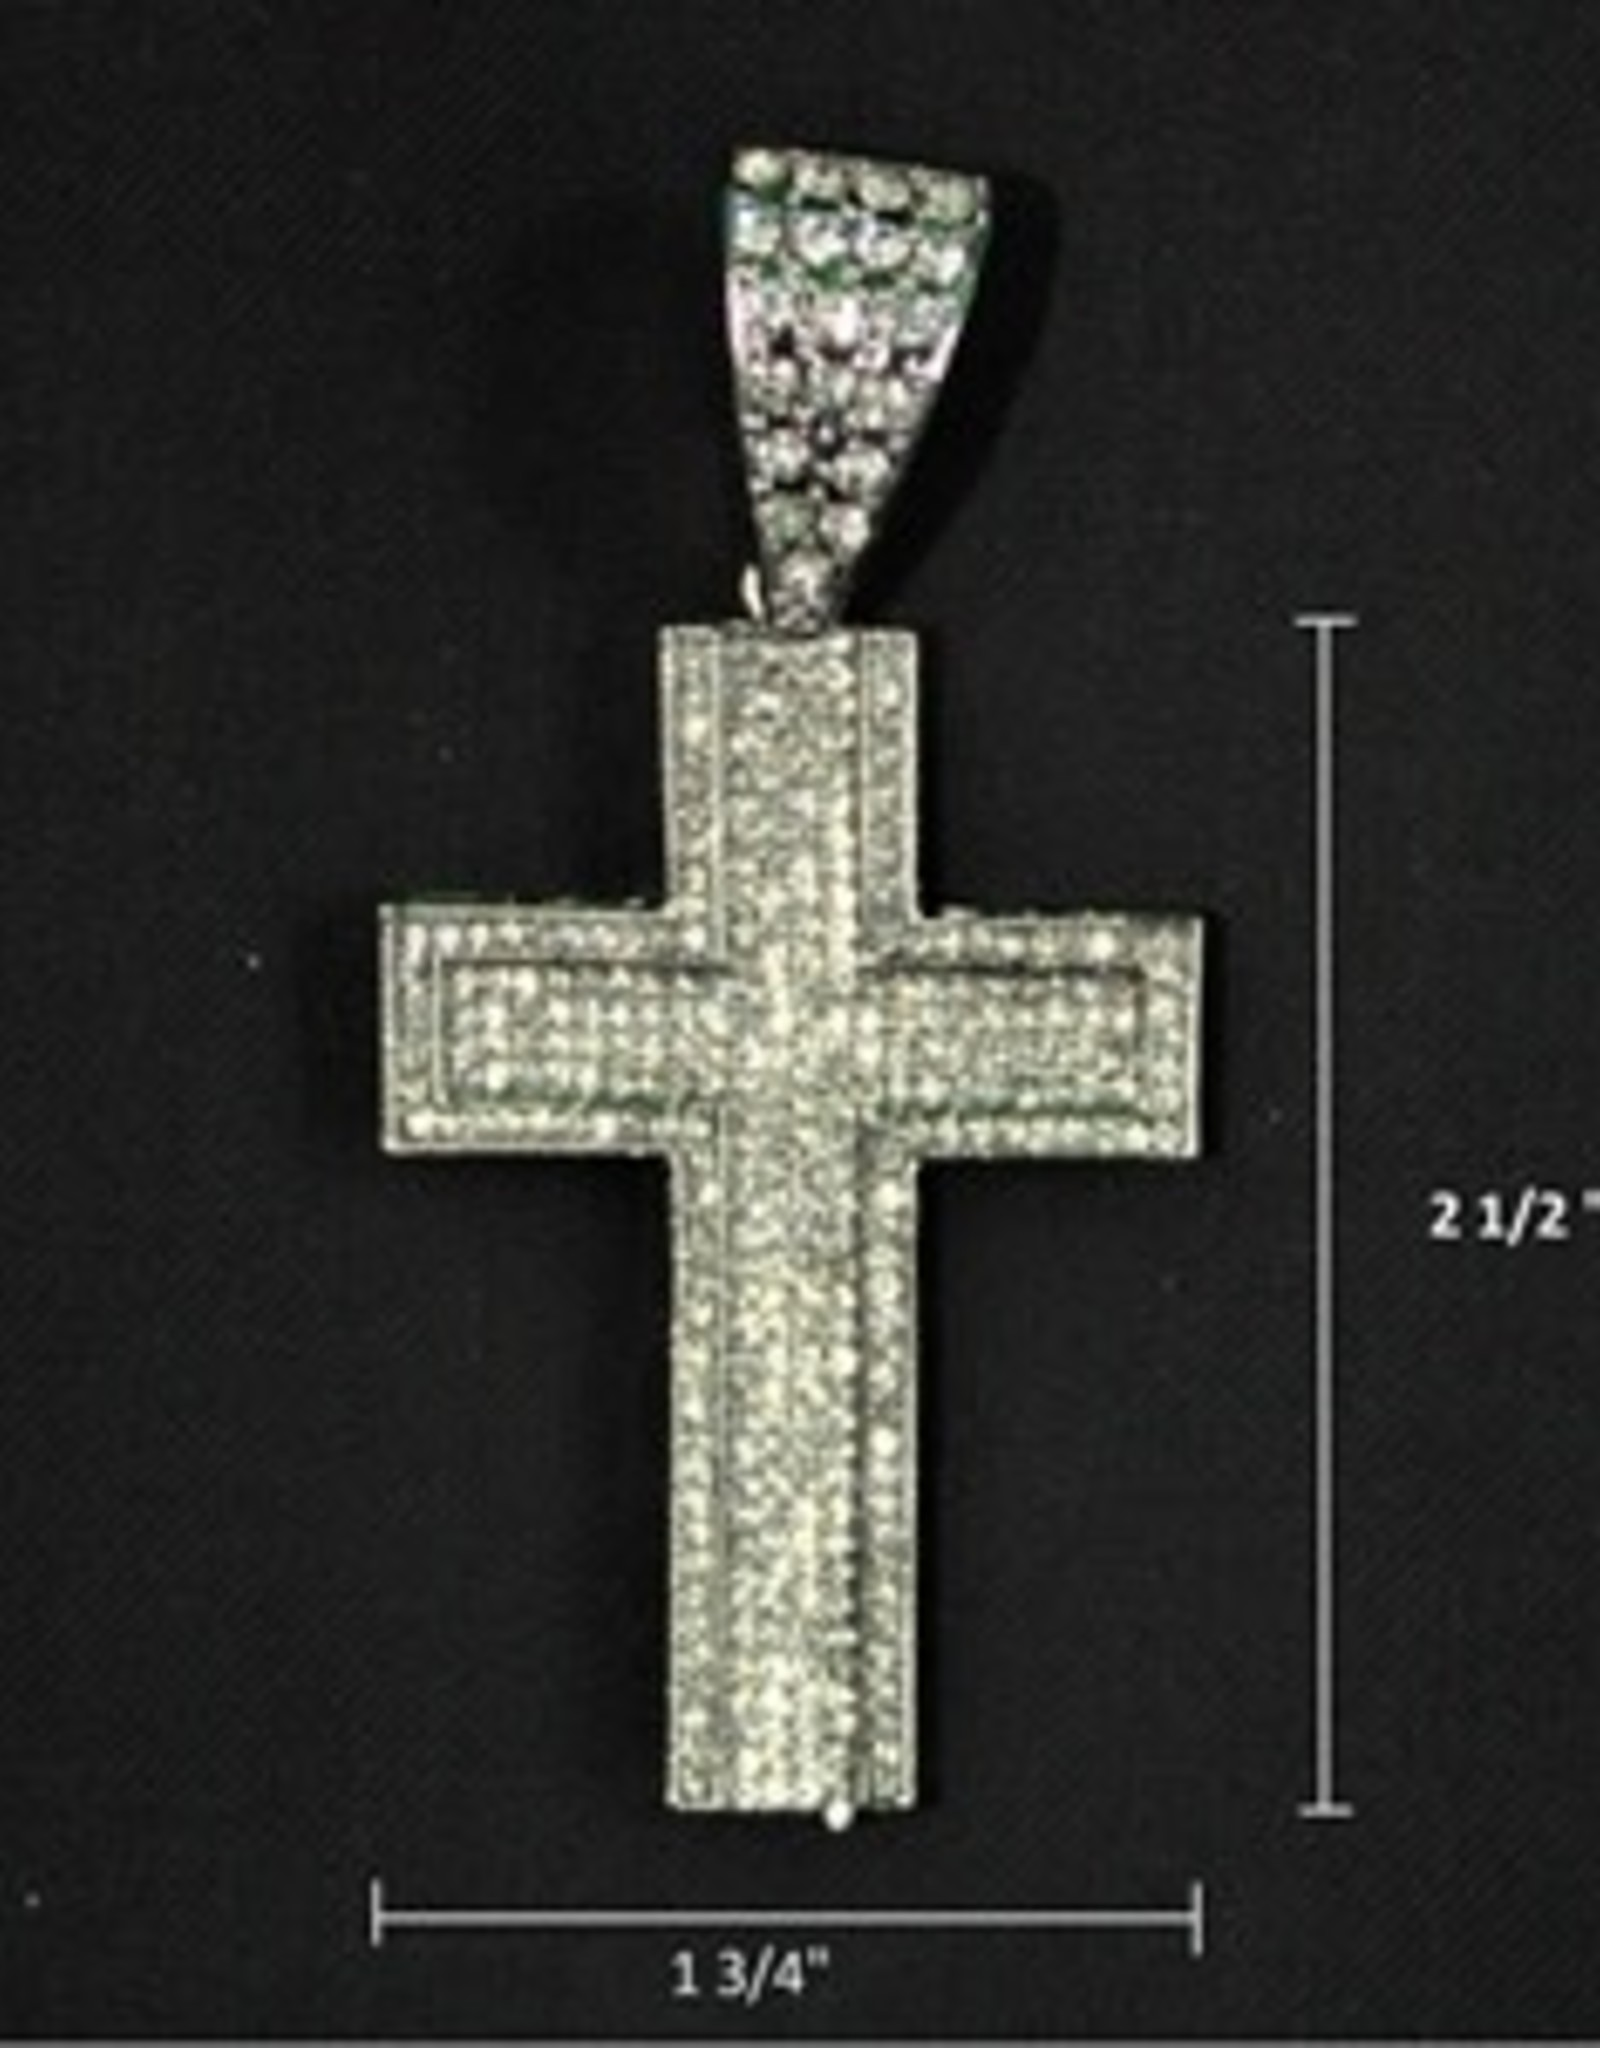 Zuha Trend Cross SIlver with 379 Crystal Dimond Size 2 1/2 By 1 3/4